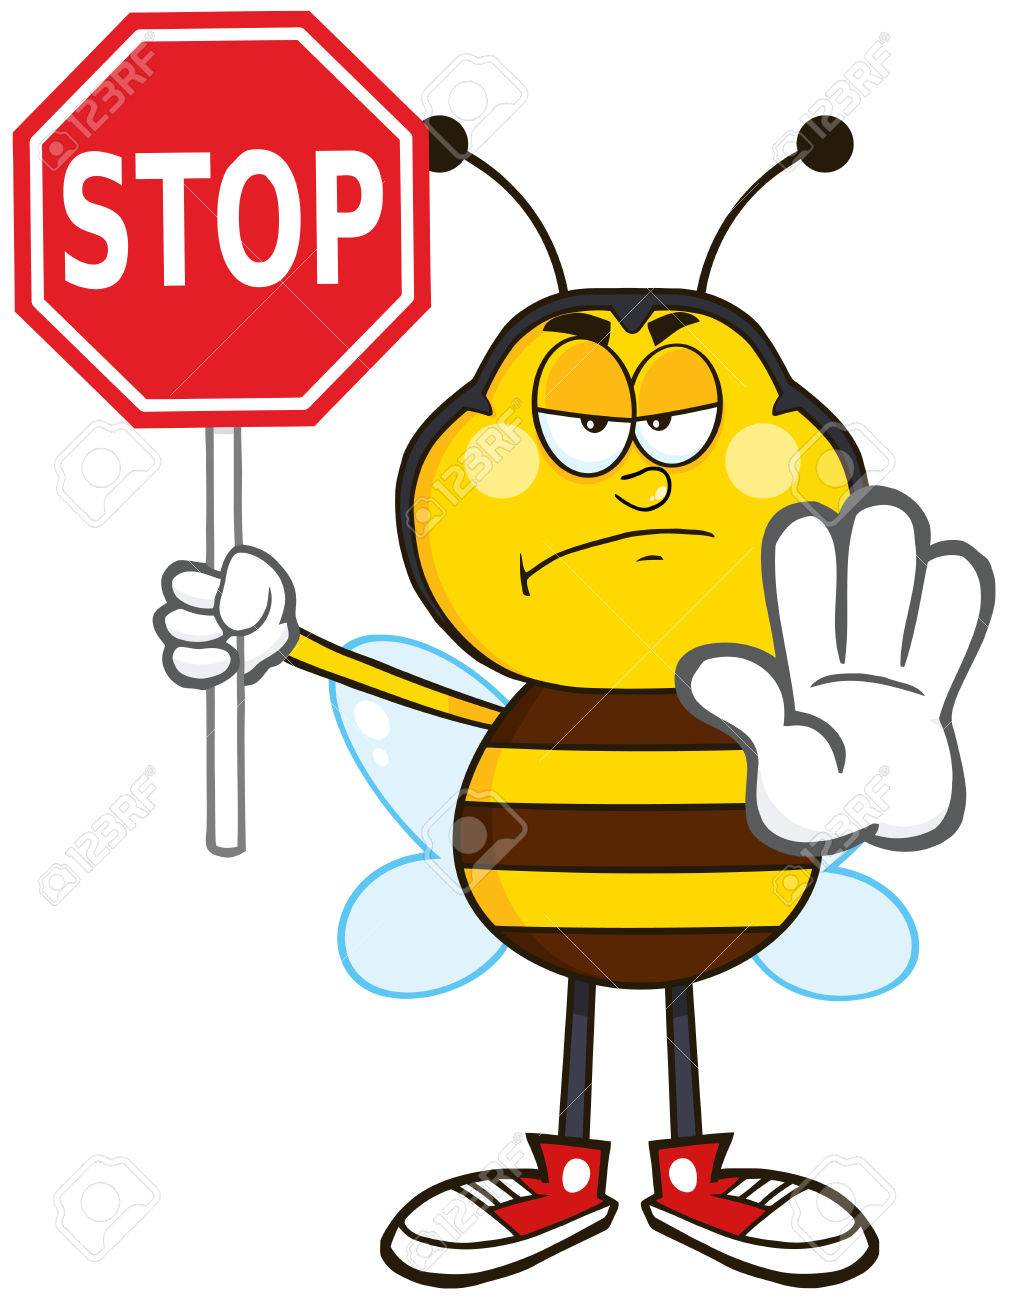 angry bee cartoon mascot character holding a stop sign illustration rh 123rf com stop sign cartoon clip art stop sign cartoon black and white